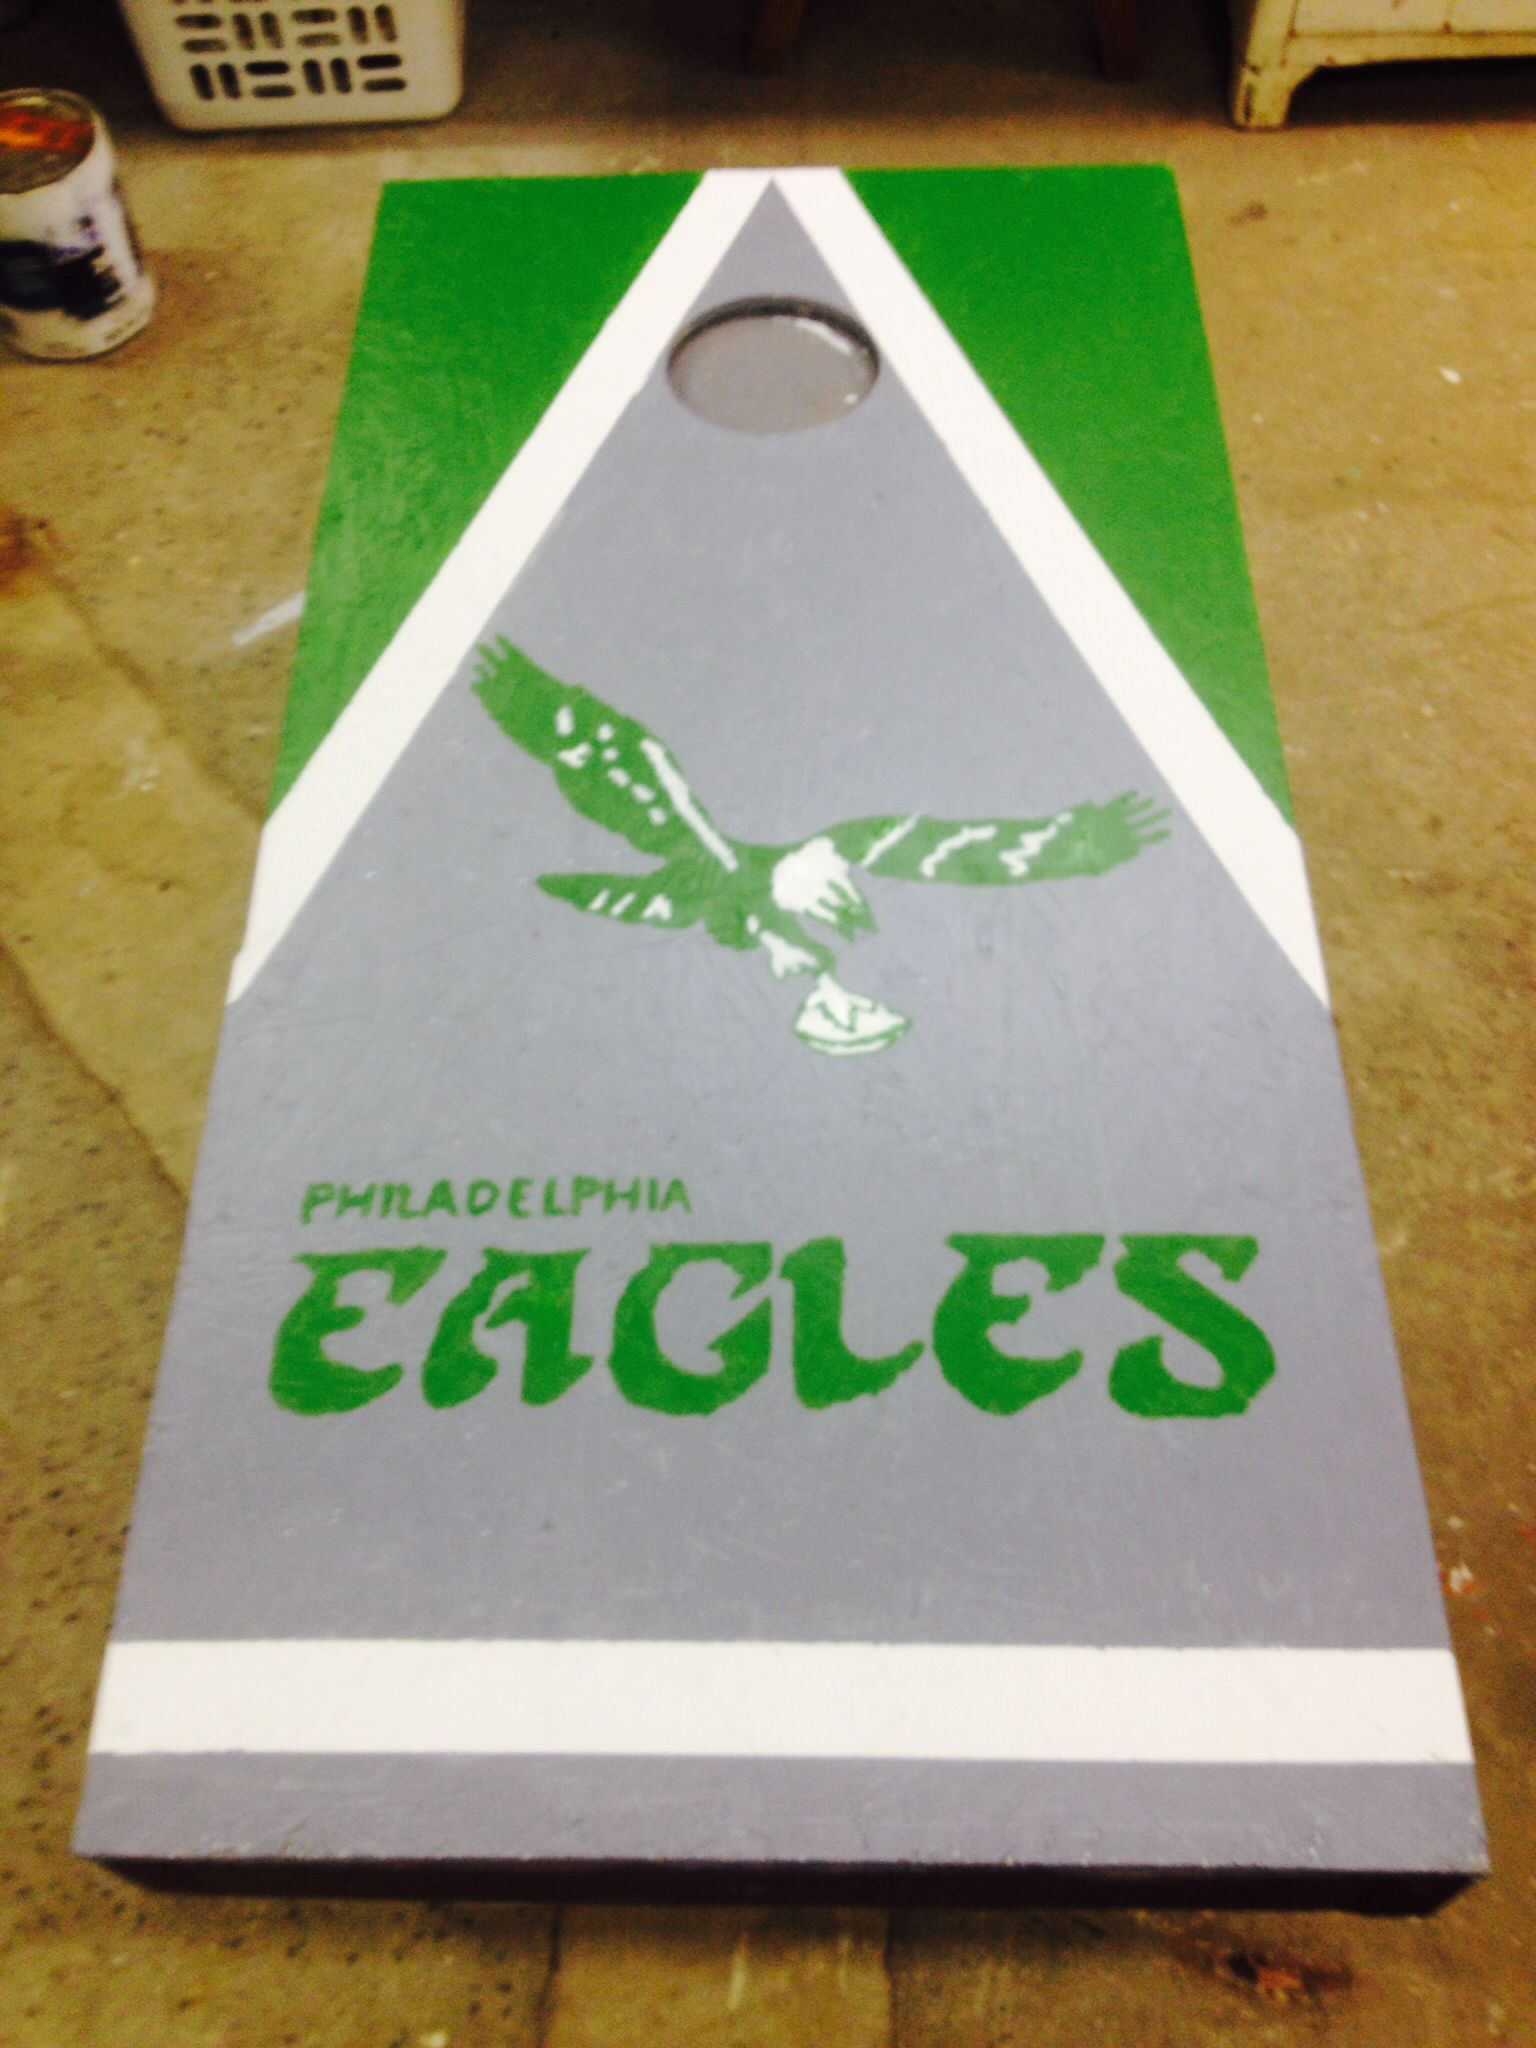 Retro Philadelphia Eagles cornhole board | Ideas | Pinterest ...